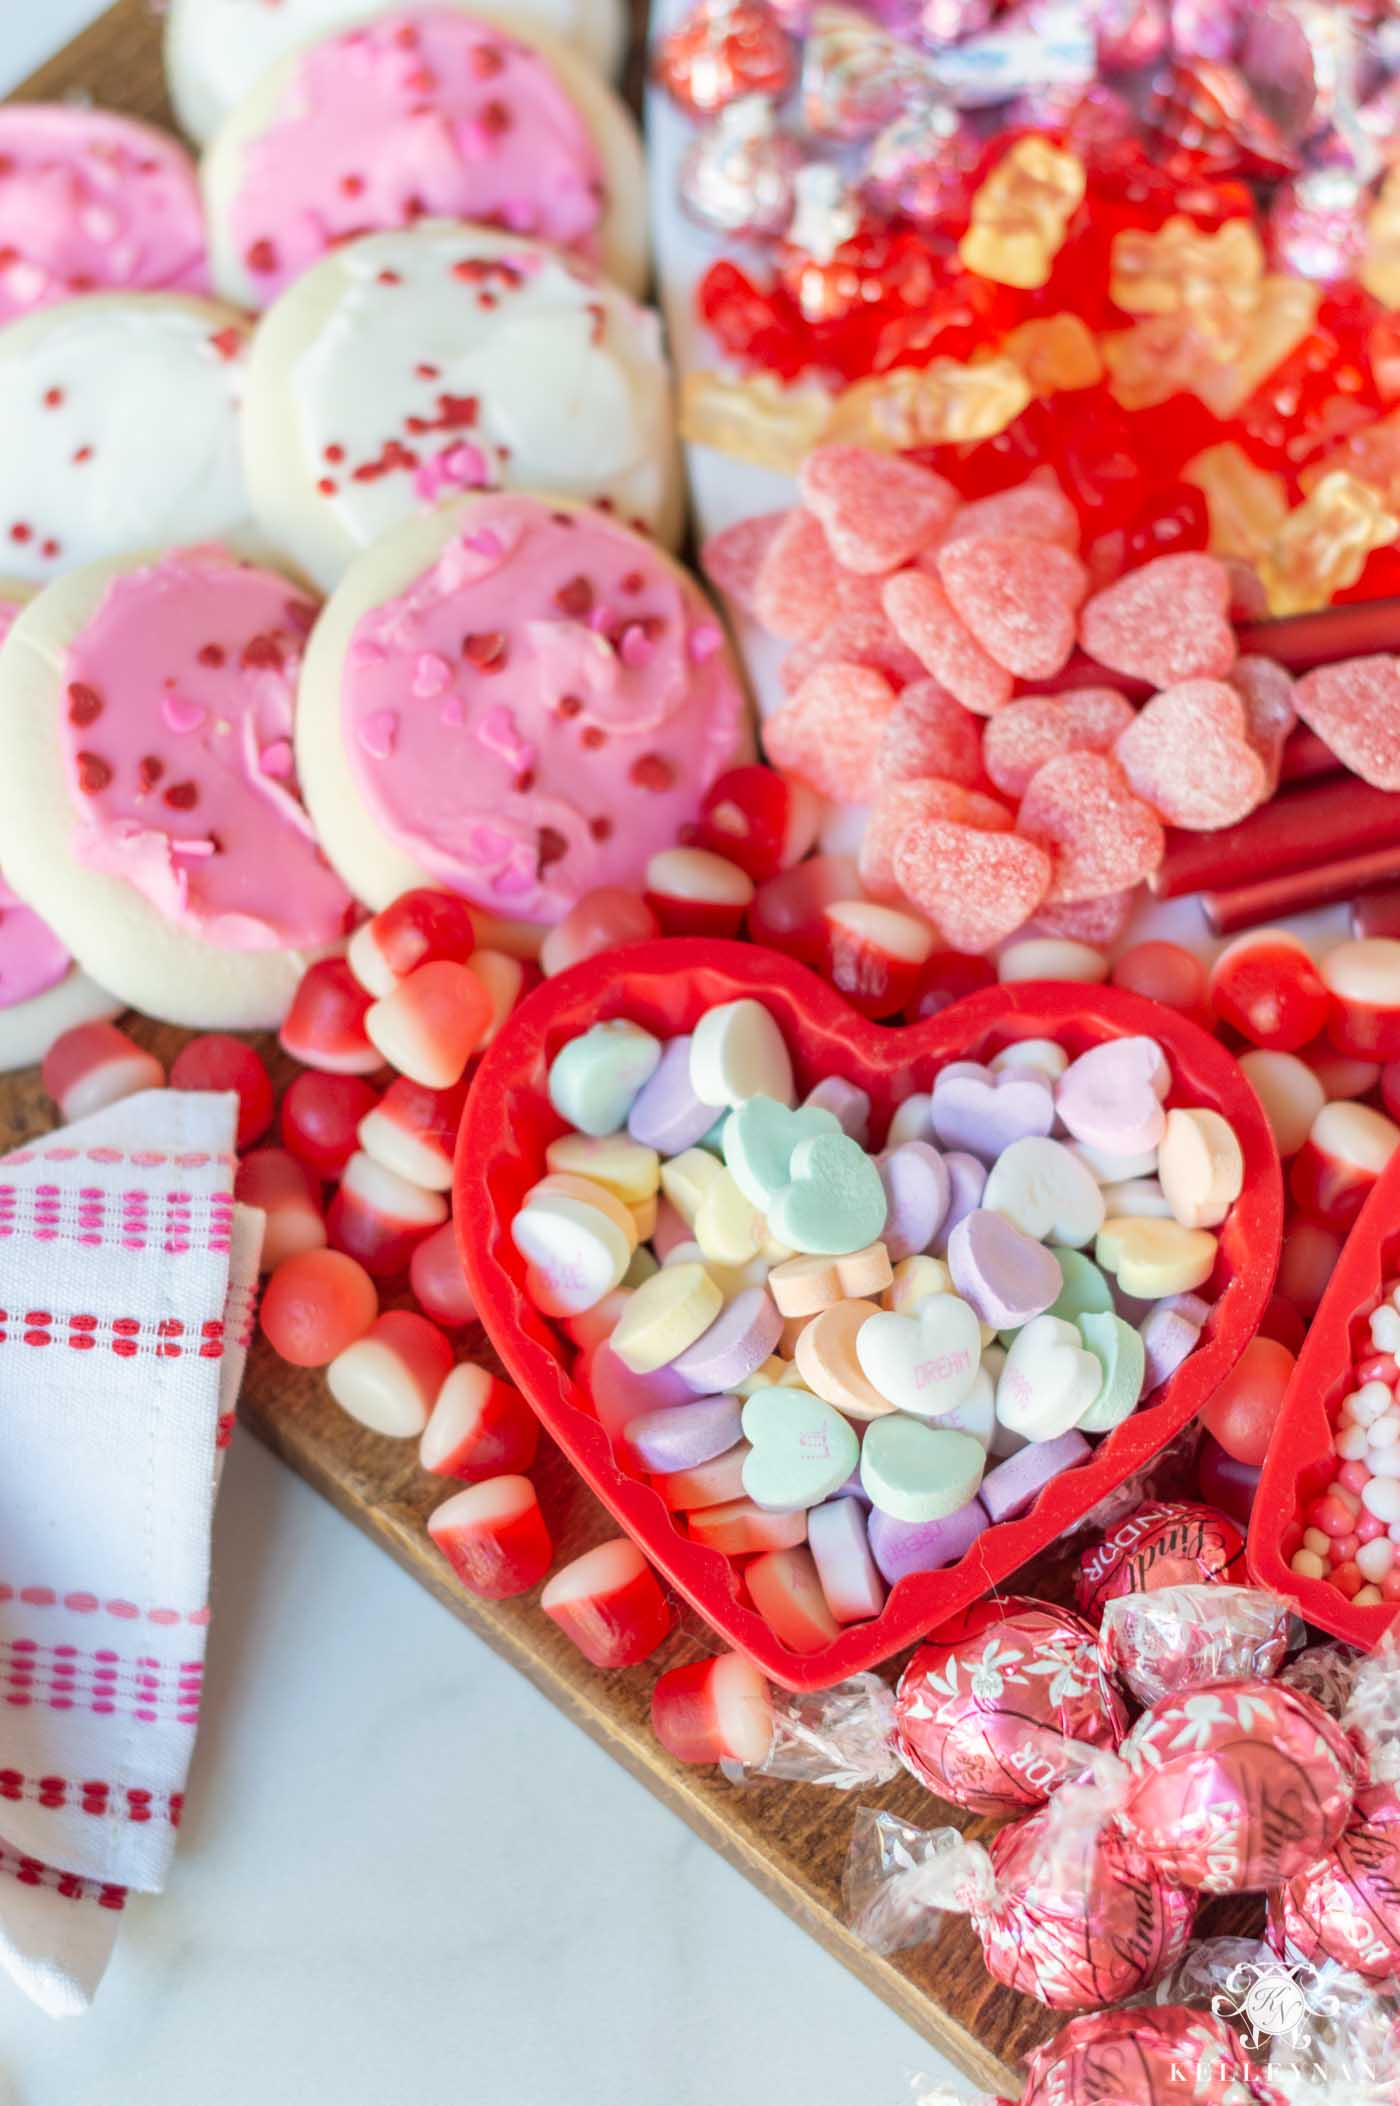 Valentine's Day Candy Board & Display Idea